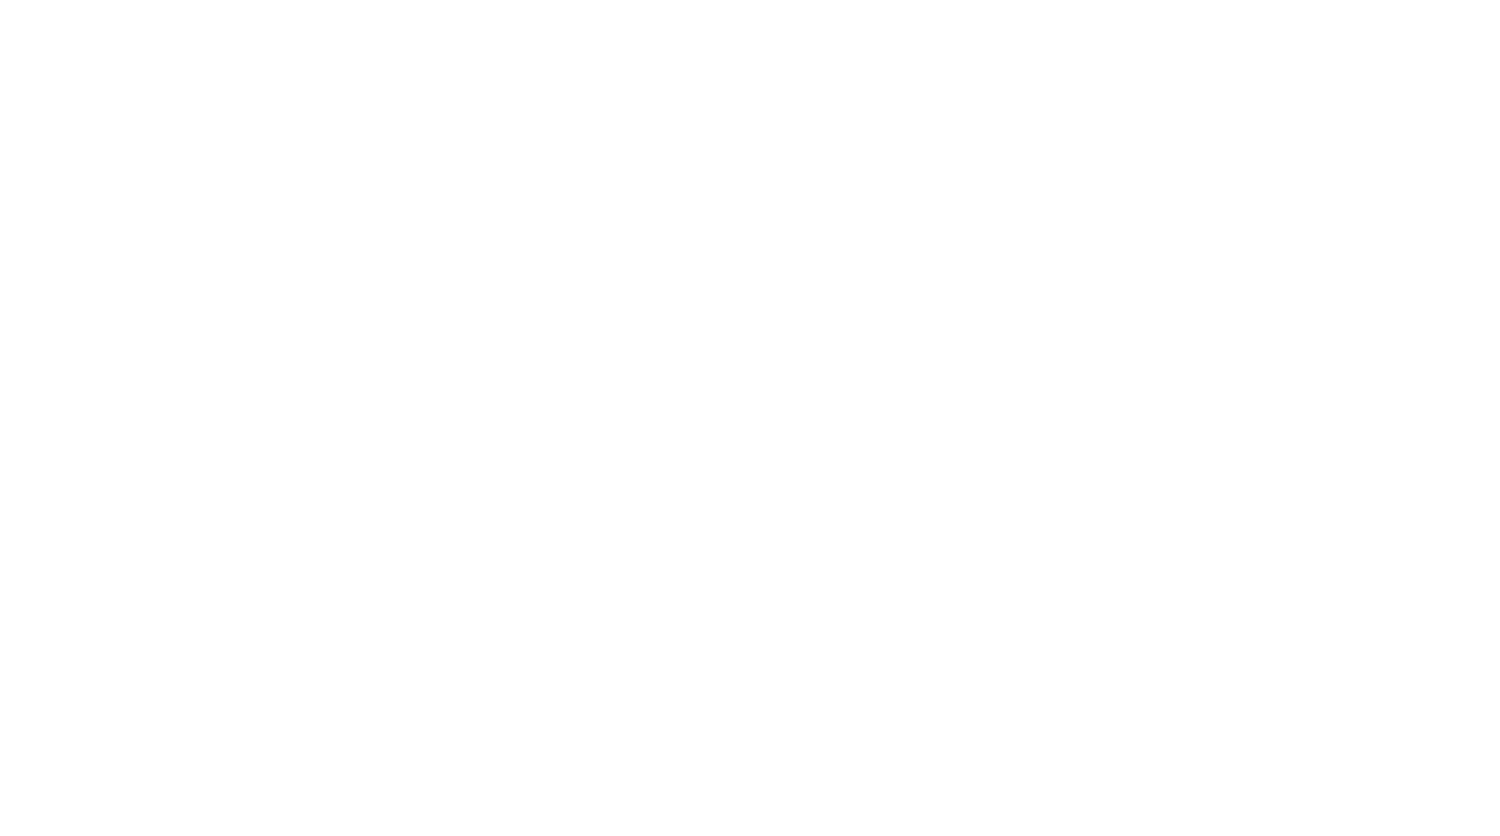 Cedar Rock Solutions LLC